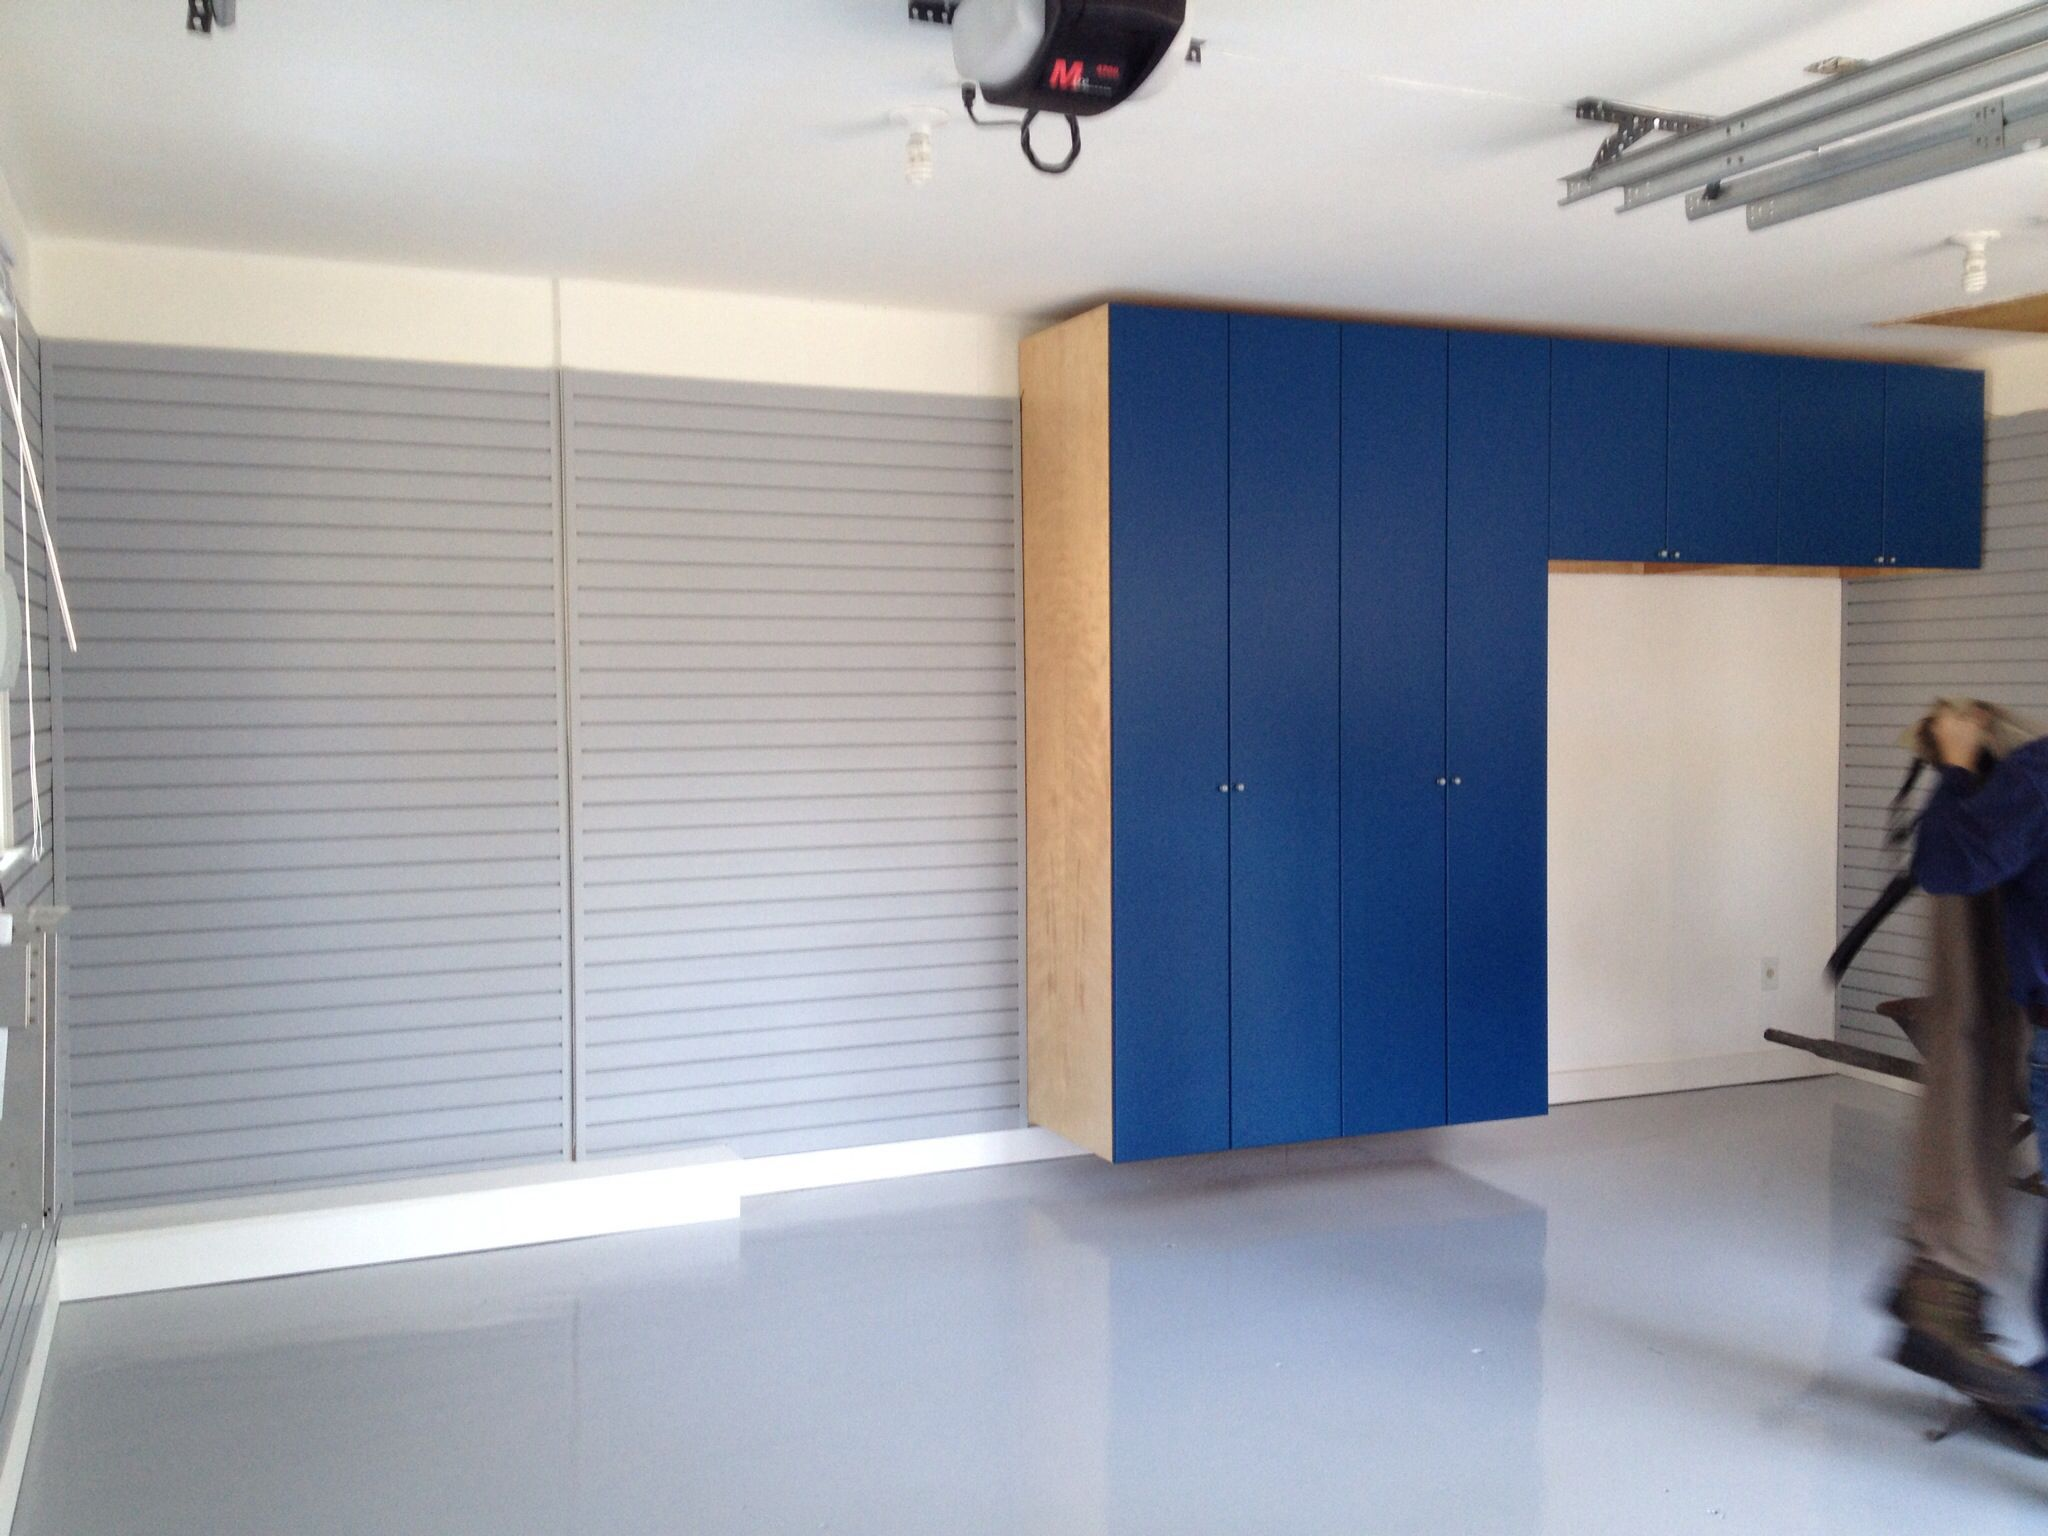 4yourgarage plete makeover of walls floor cabinets